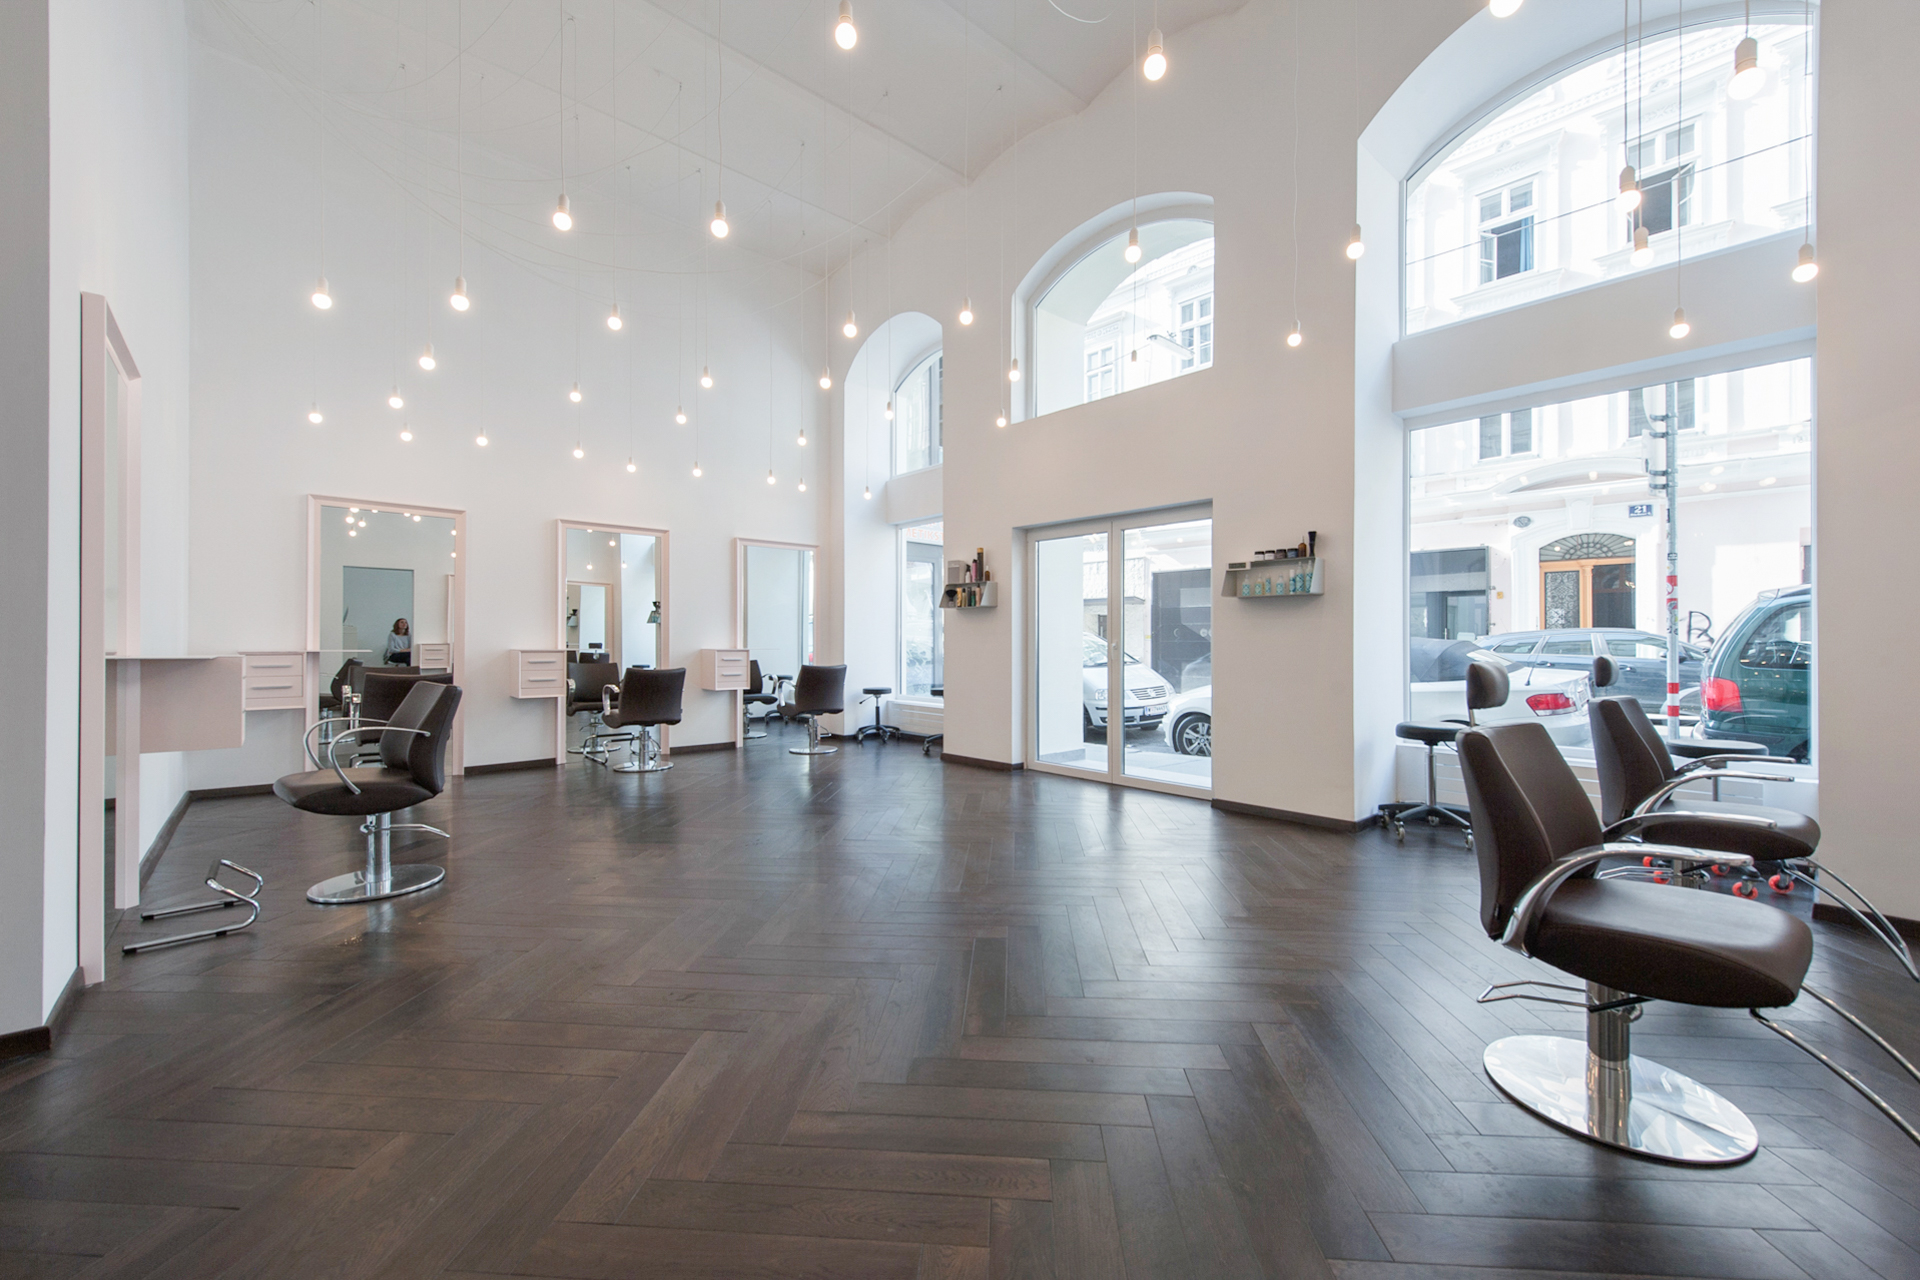 Salon 1060 — VYDEN SALON